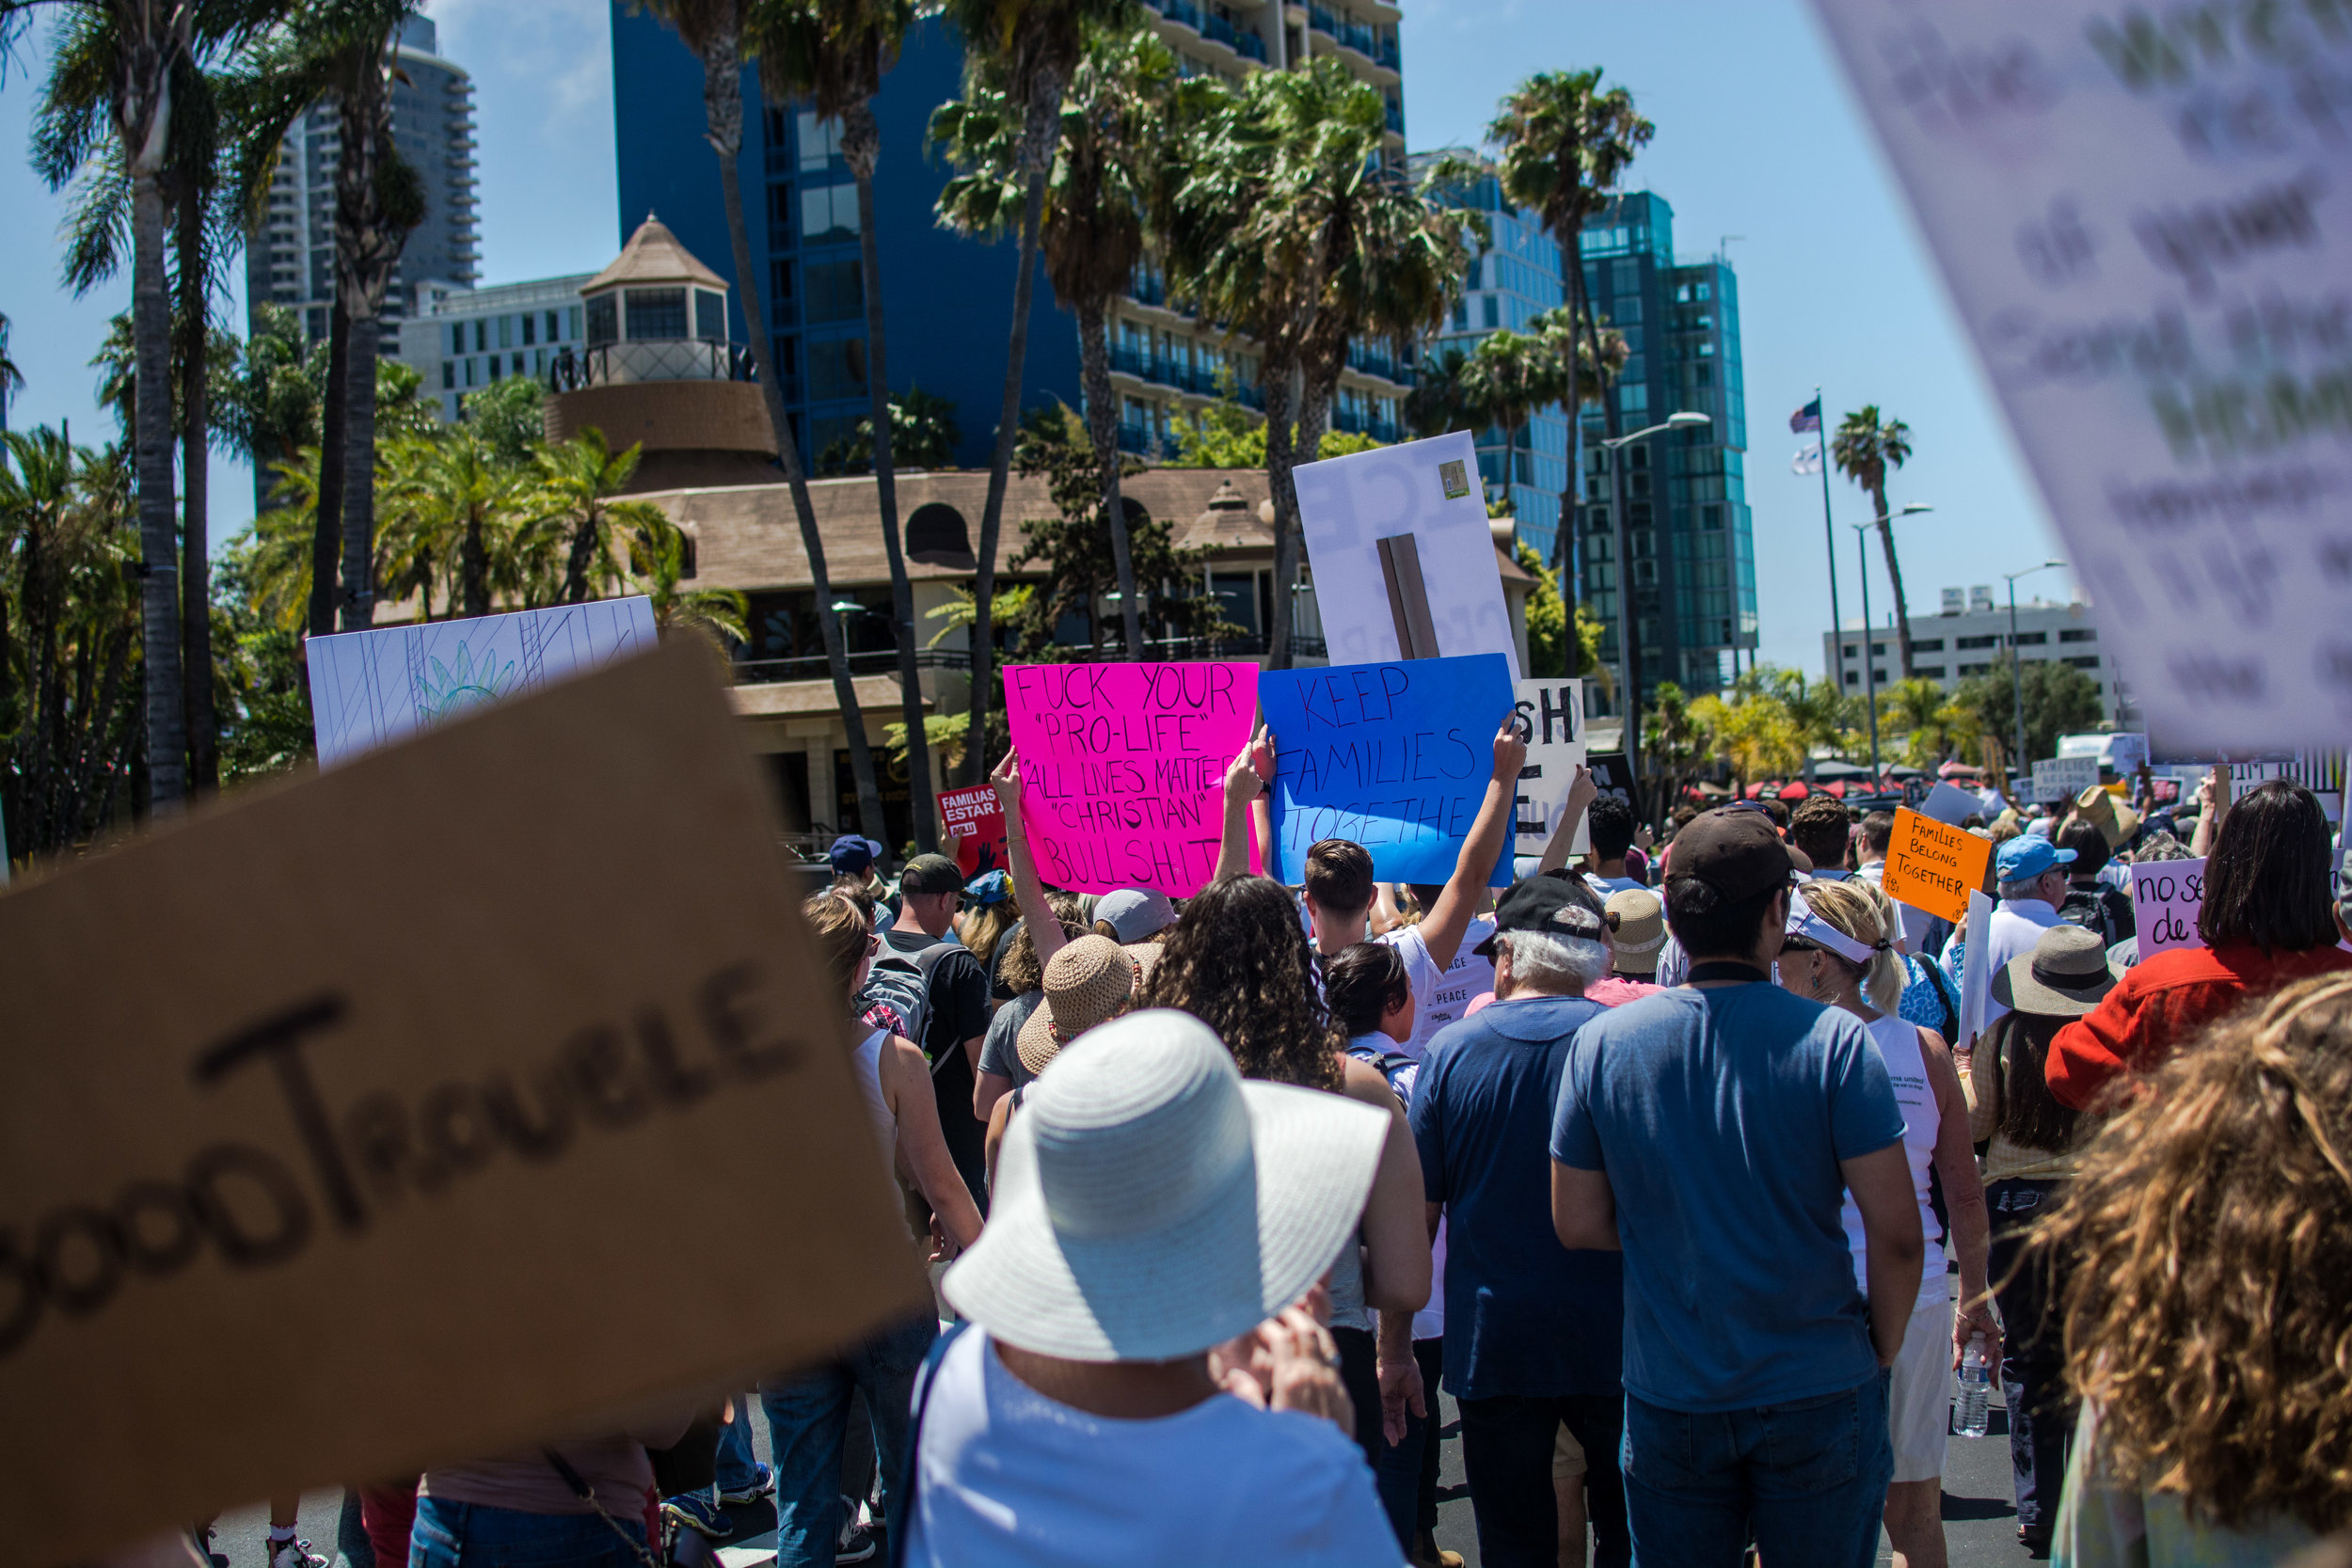 FamiliesBelongTogetherMarch-19.jpg